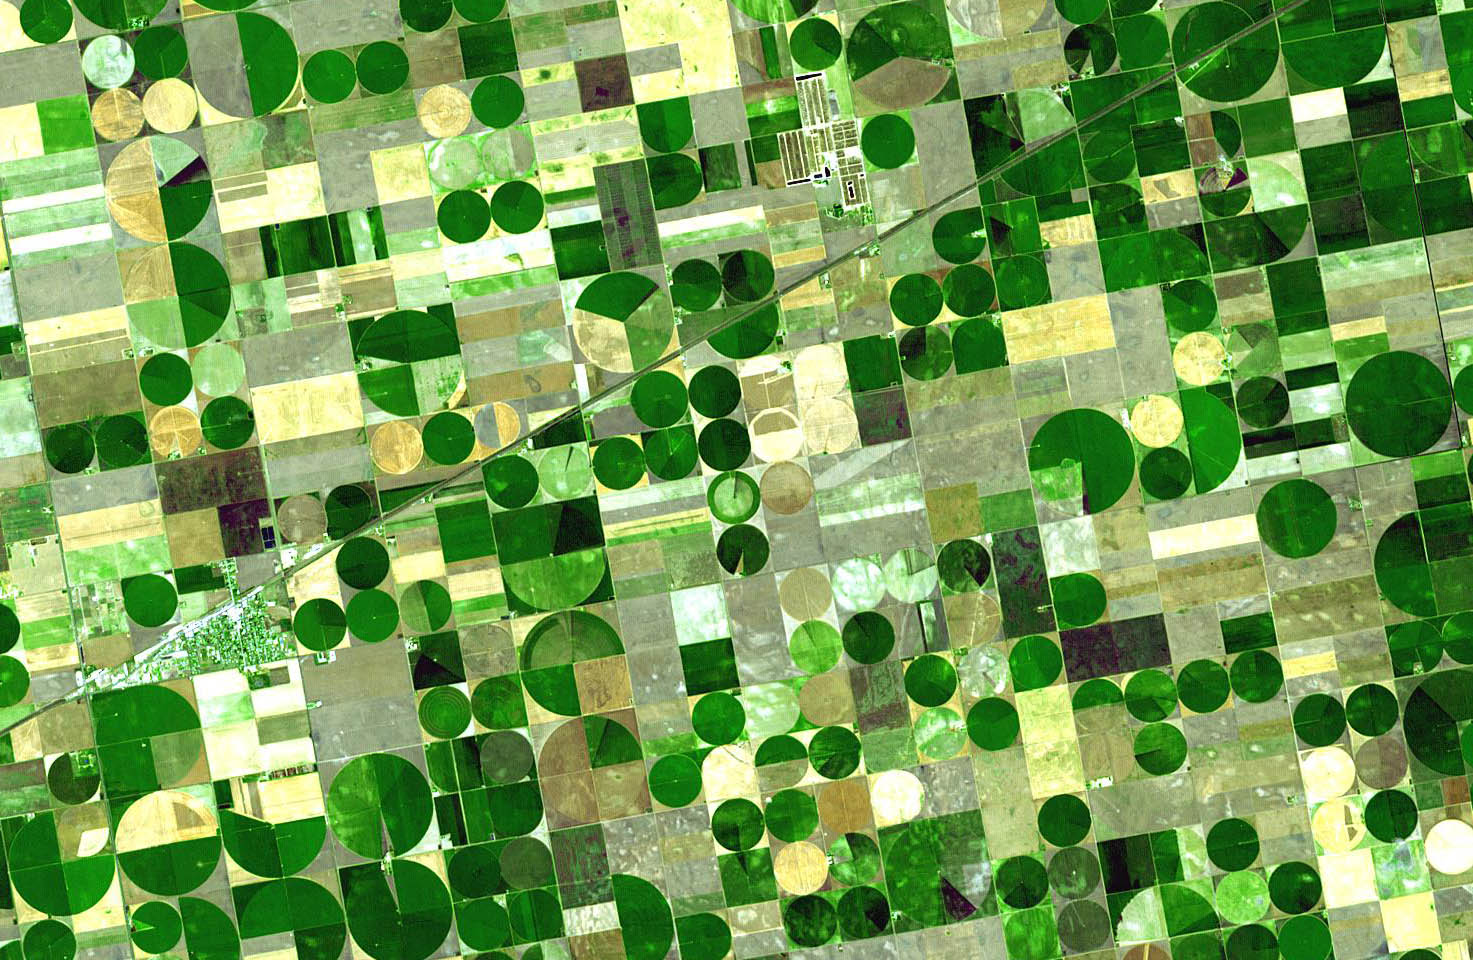 Satellite photo of farmland